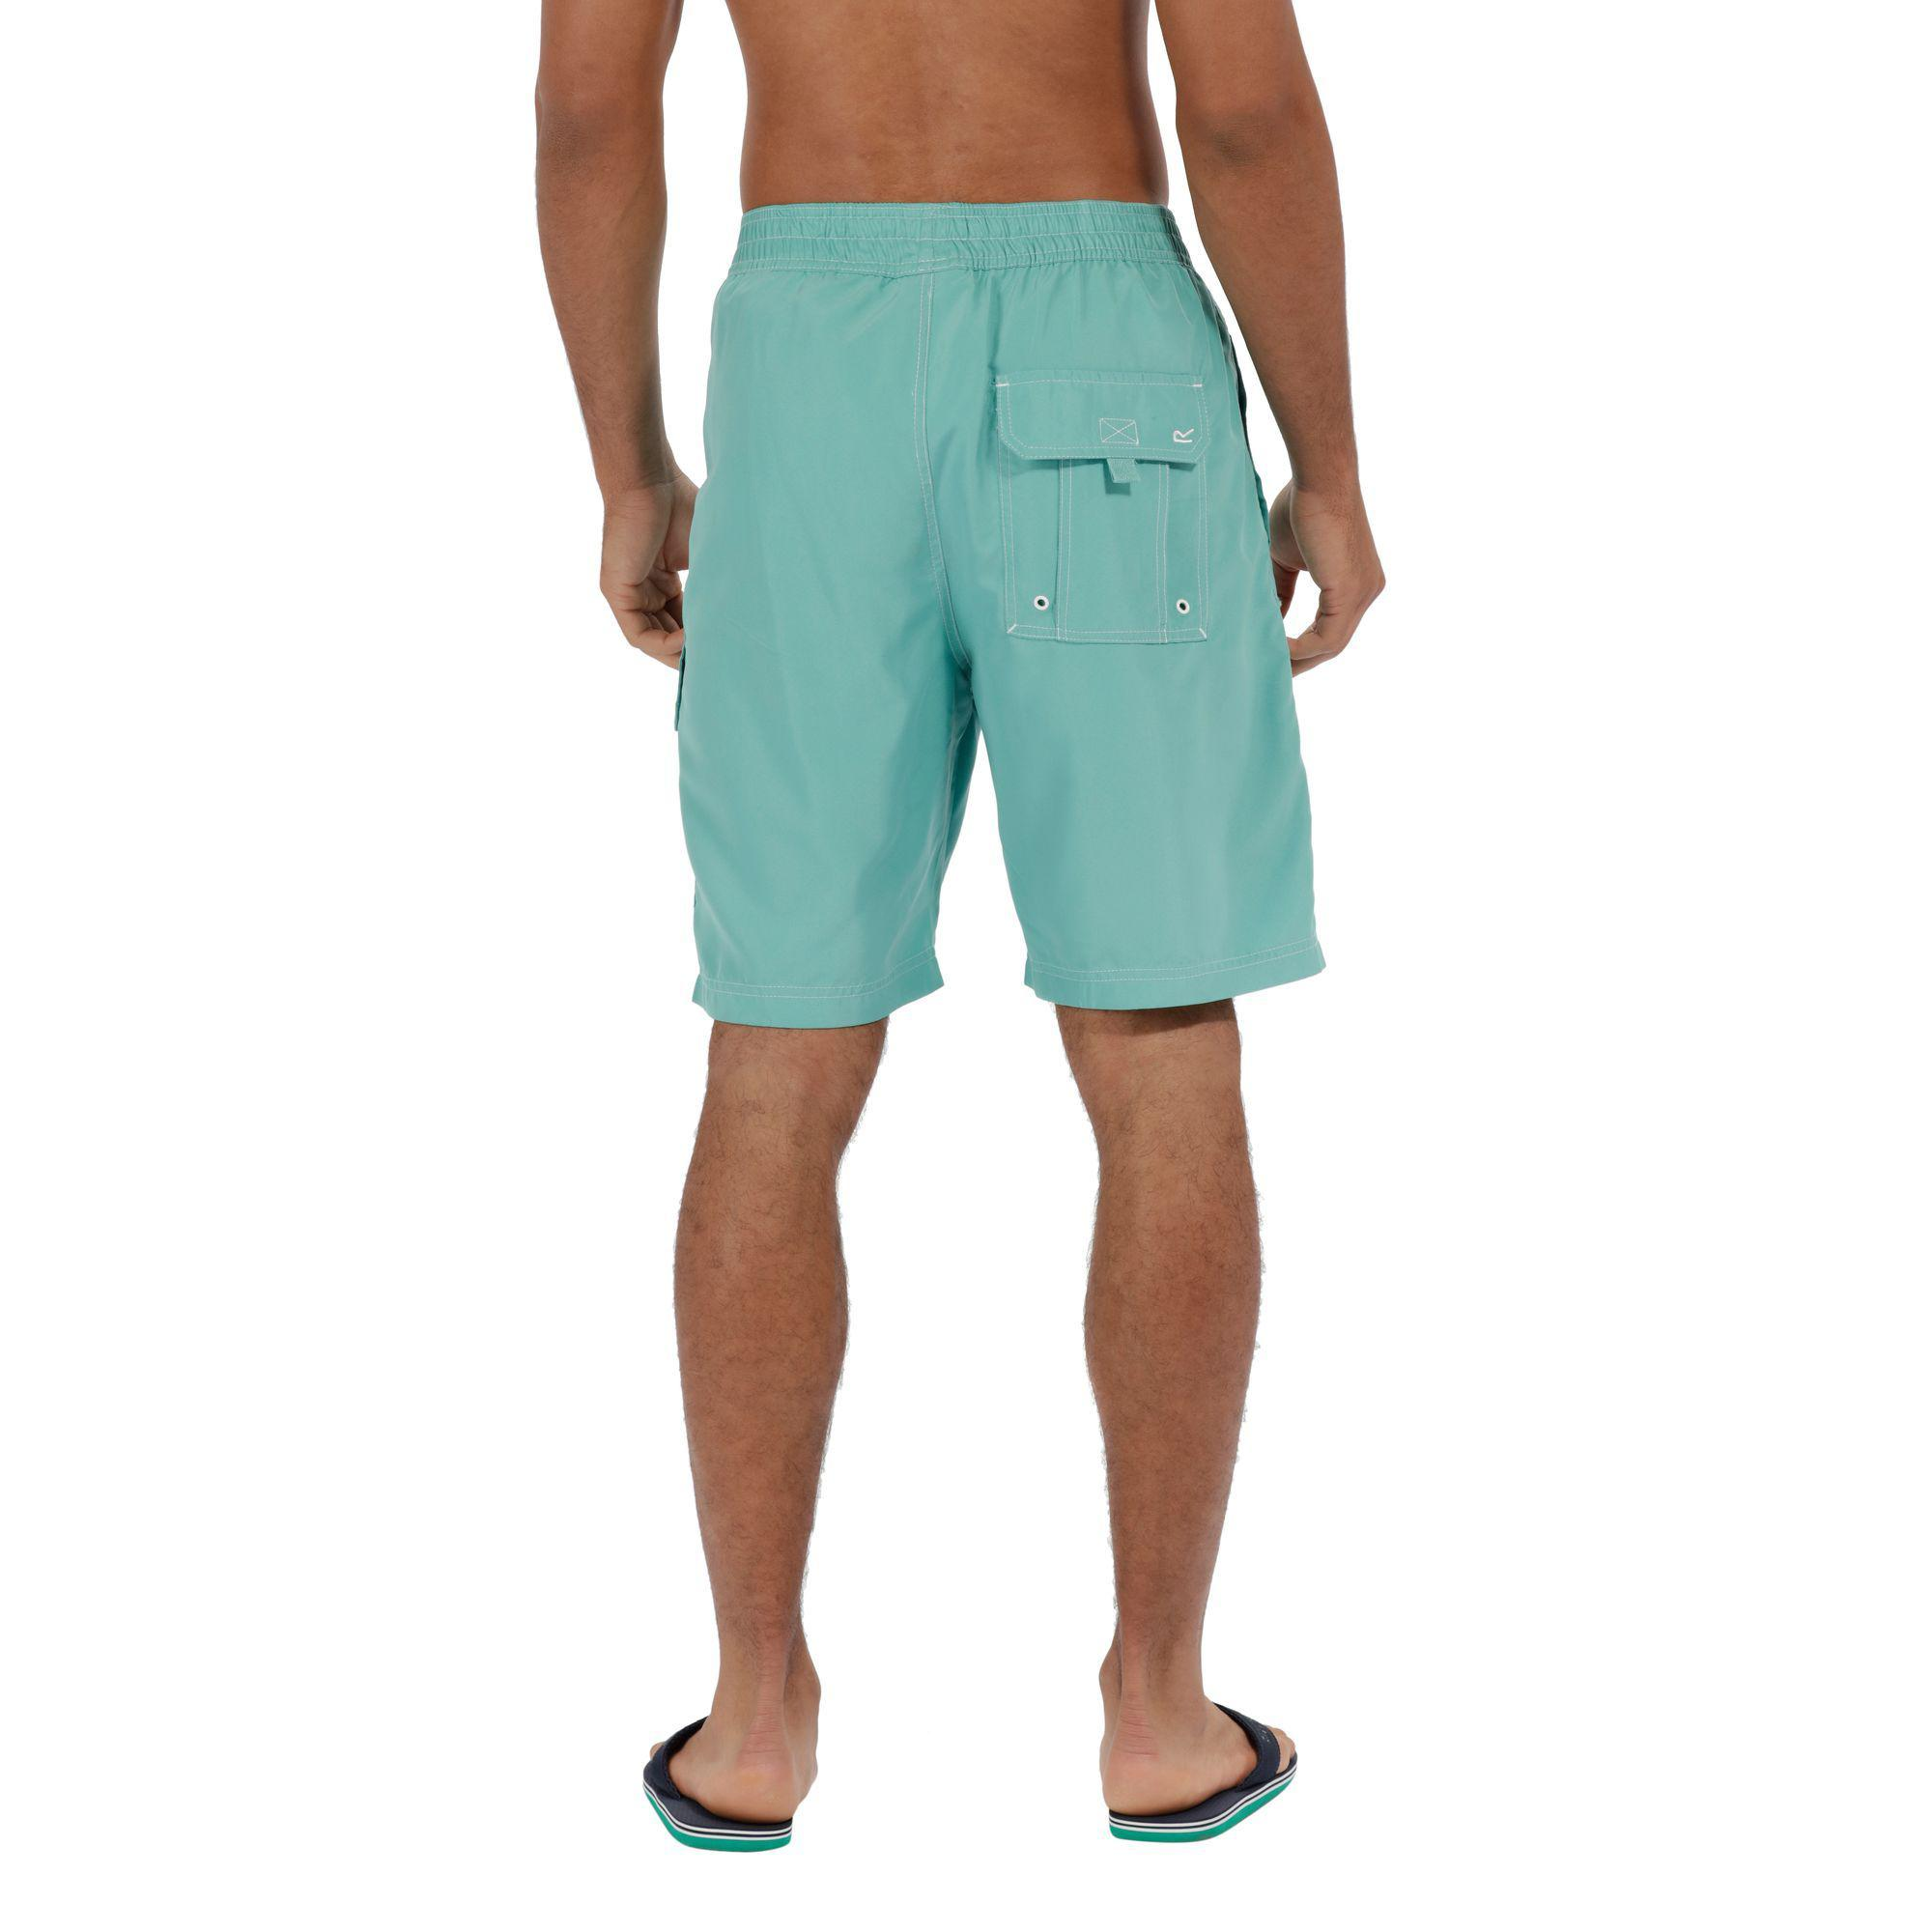 635304855e Regatta - Green 'hotham' Swim Board Shorts for Men - Lyst. View fullscreen